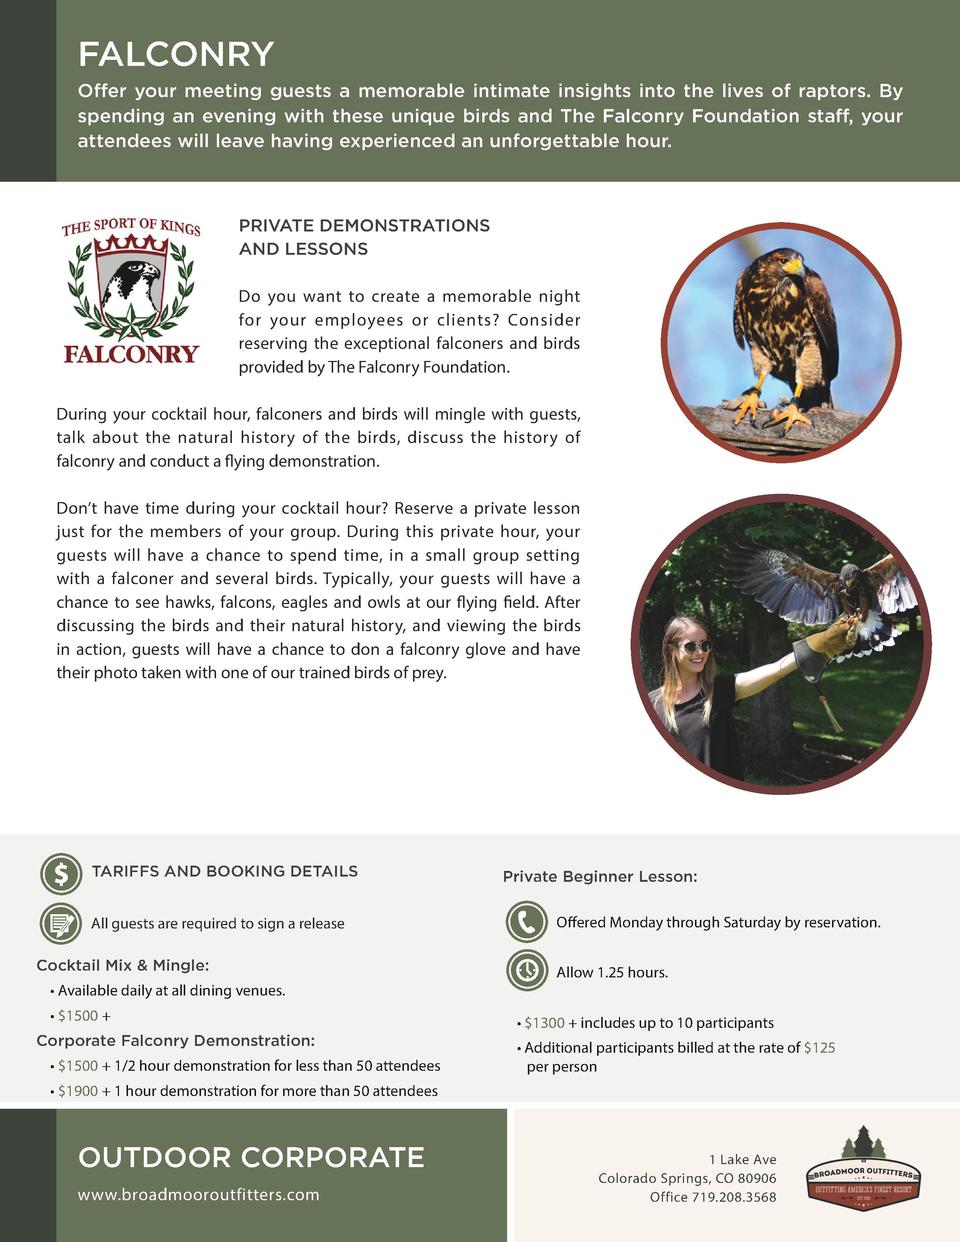 FALCONRY Offer your meeting guests a memorable intimate insights into the lives of raptors. By spending an evening with th...